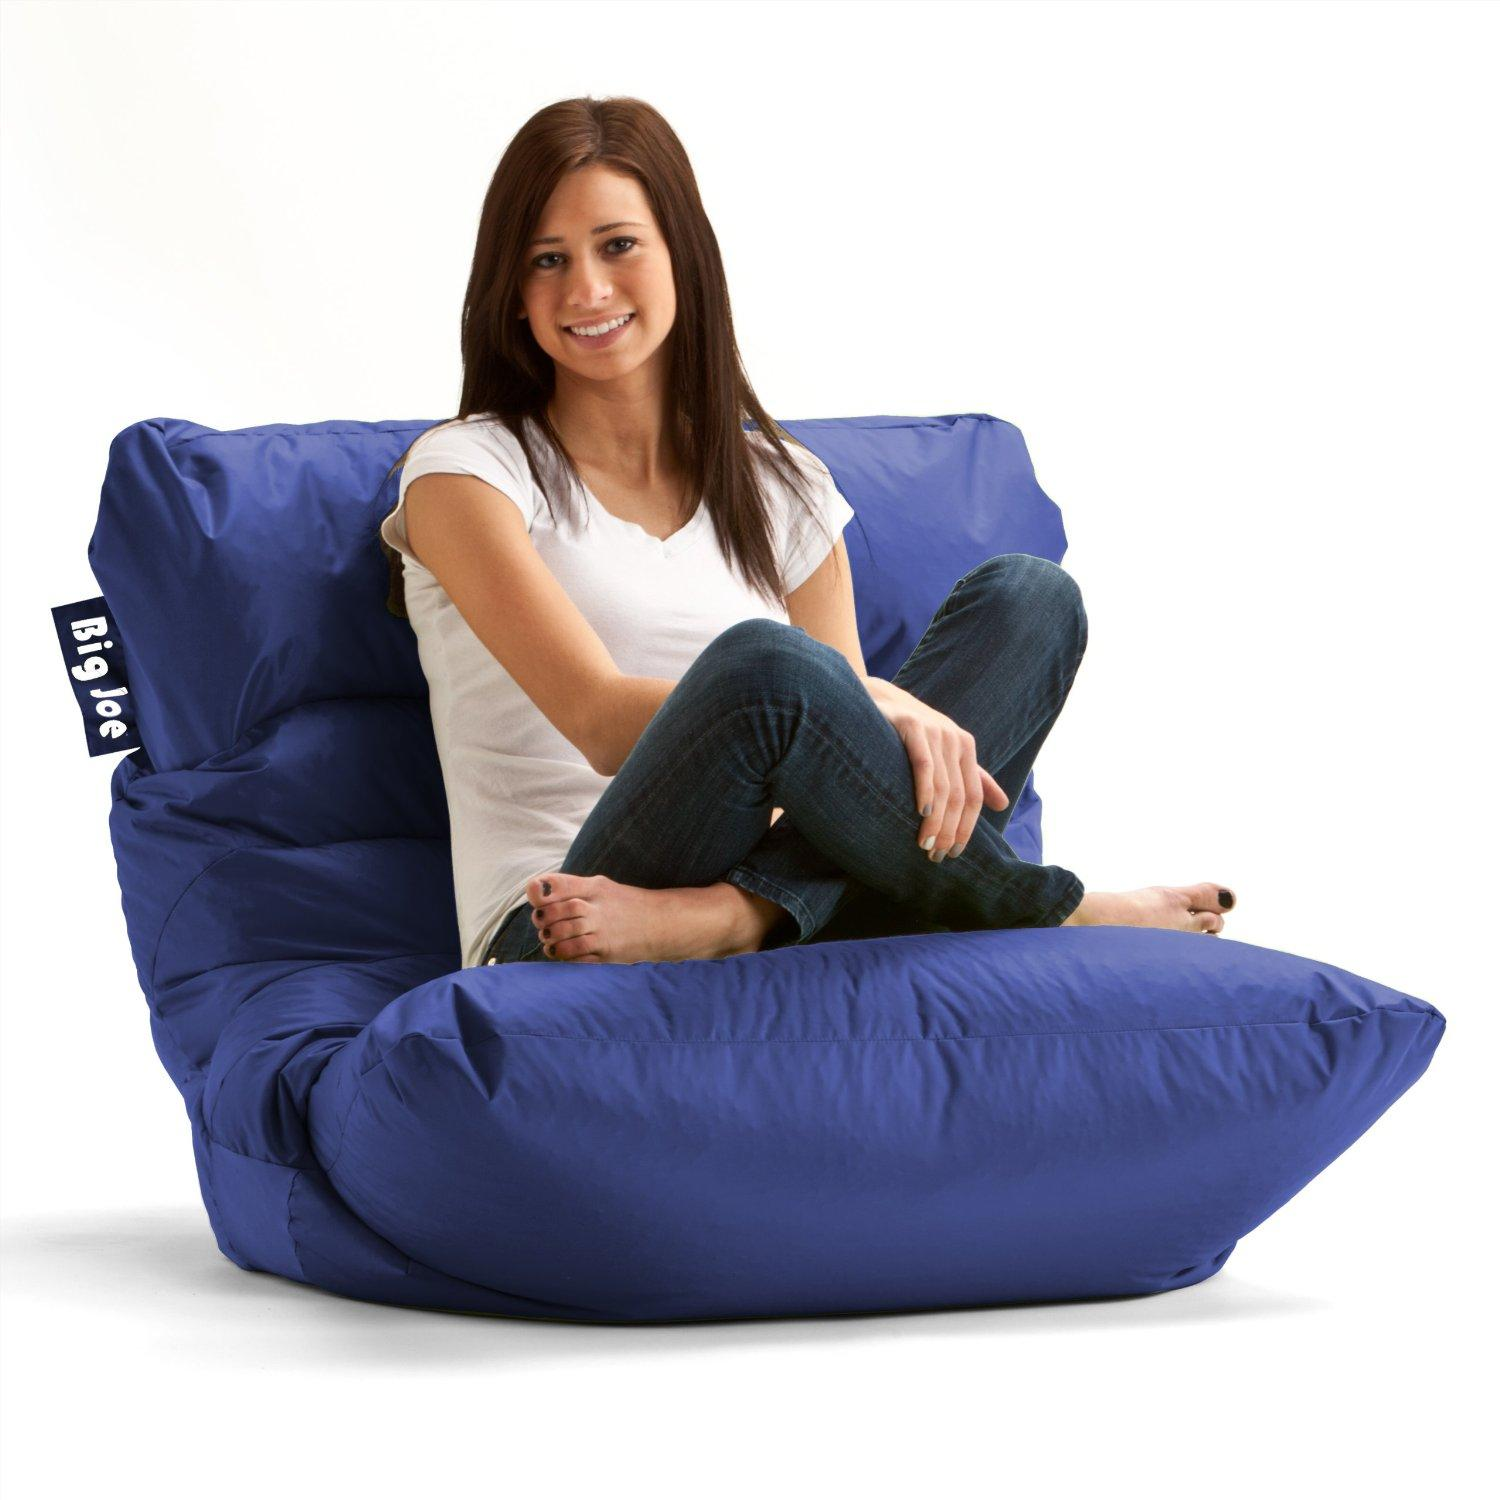 $29 Big Joe Roma Bean Bag Chair